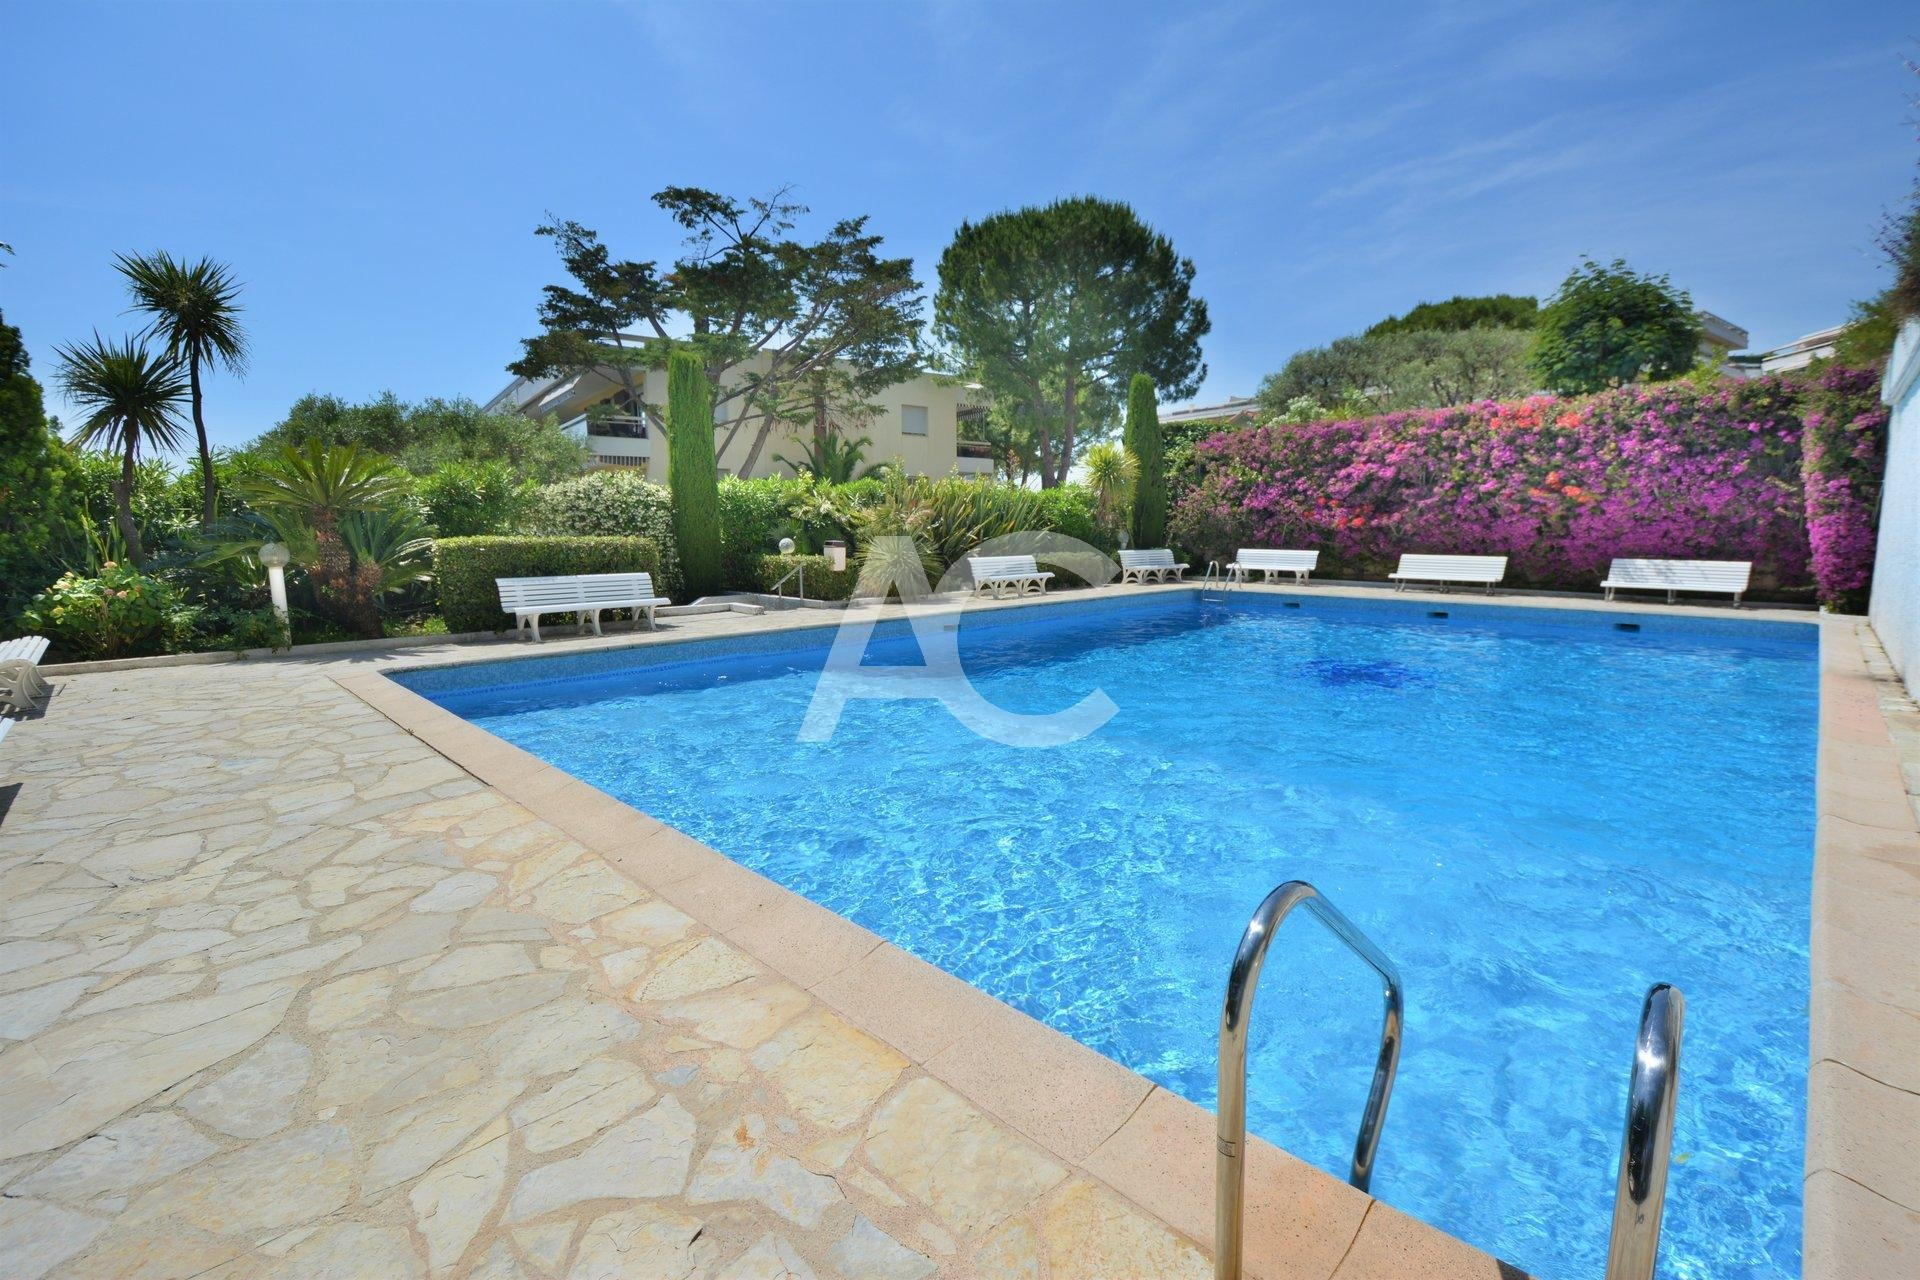 JUAN LES PINS - BEAUTIFUL SEAVIEW - 110M² SOUTH AND WEST FACING